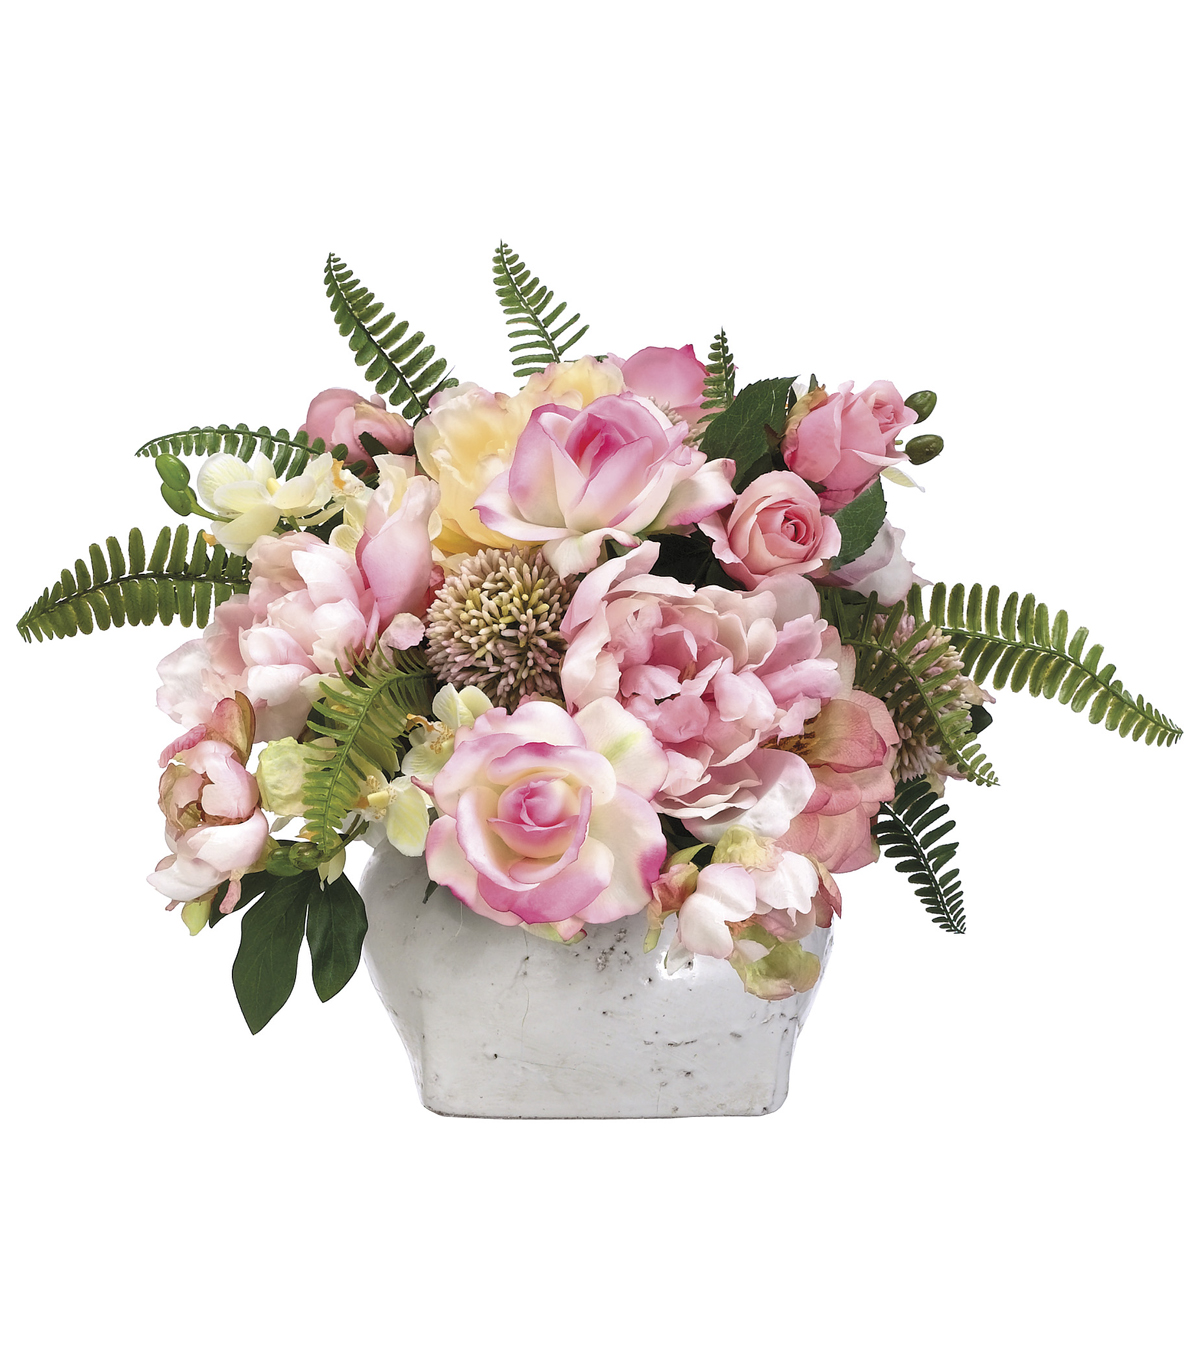 Bloom Room Luxe 14\u0027\u0027 Rose, Peony, Allium & Hydrangea In Pot-Pink